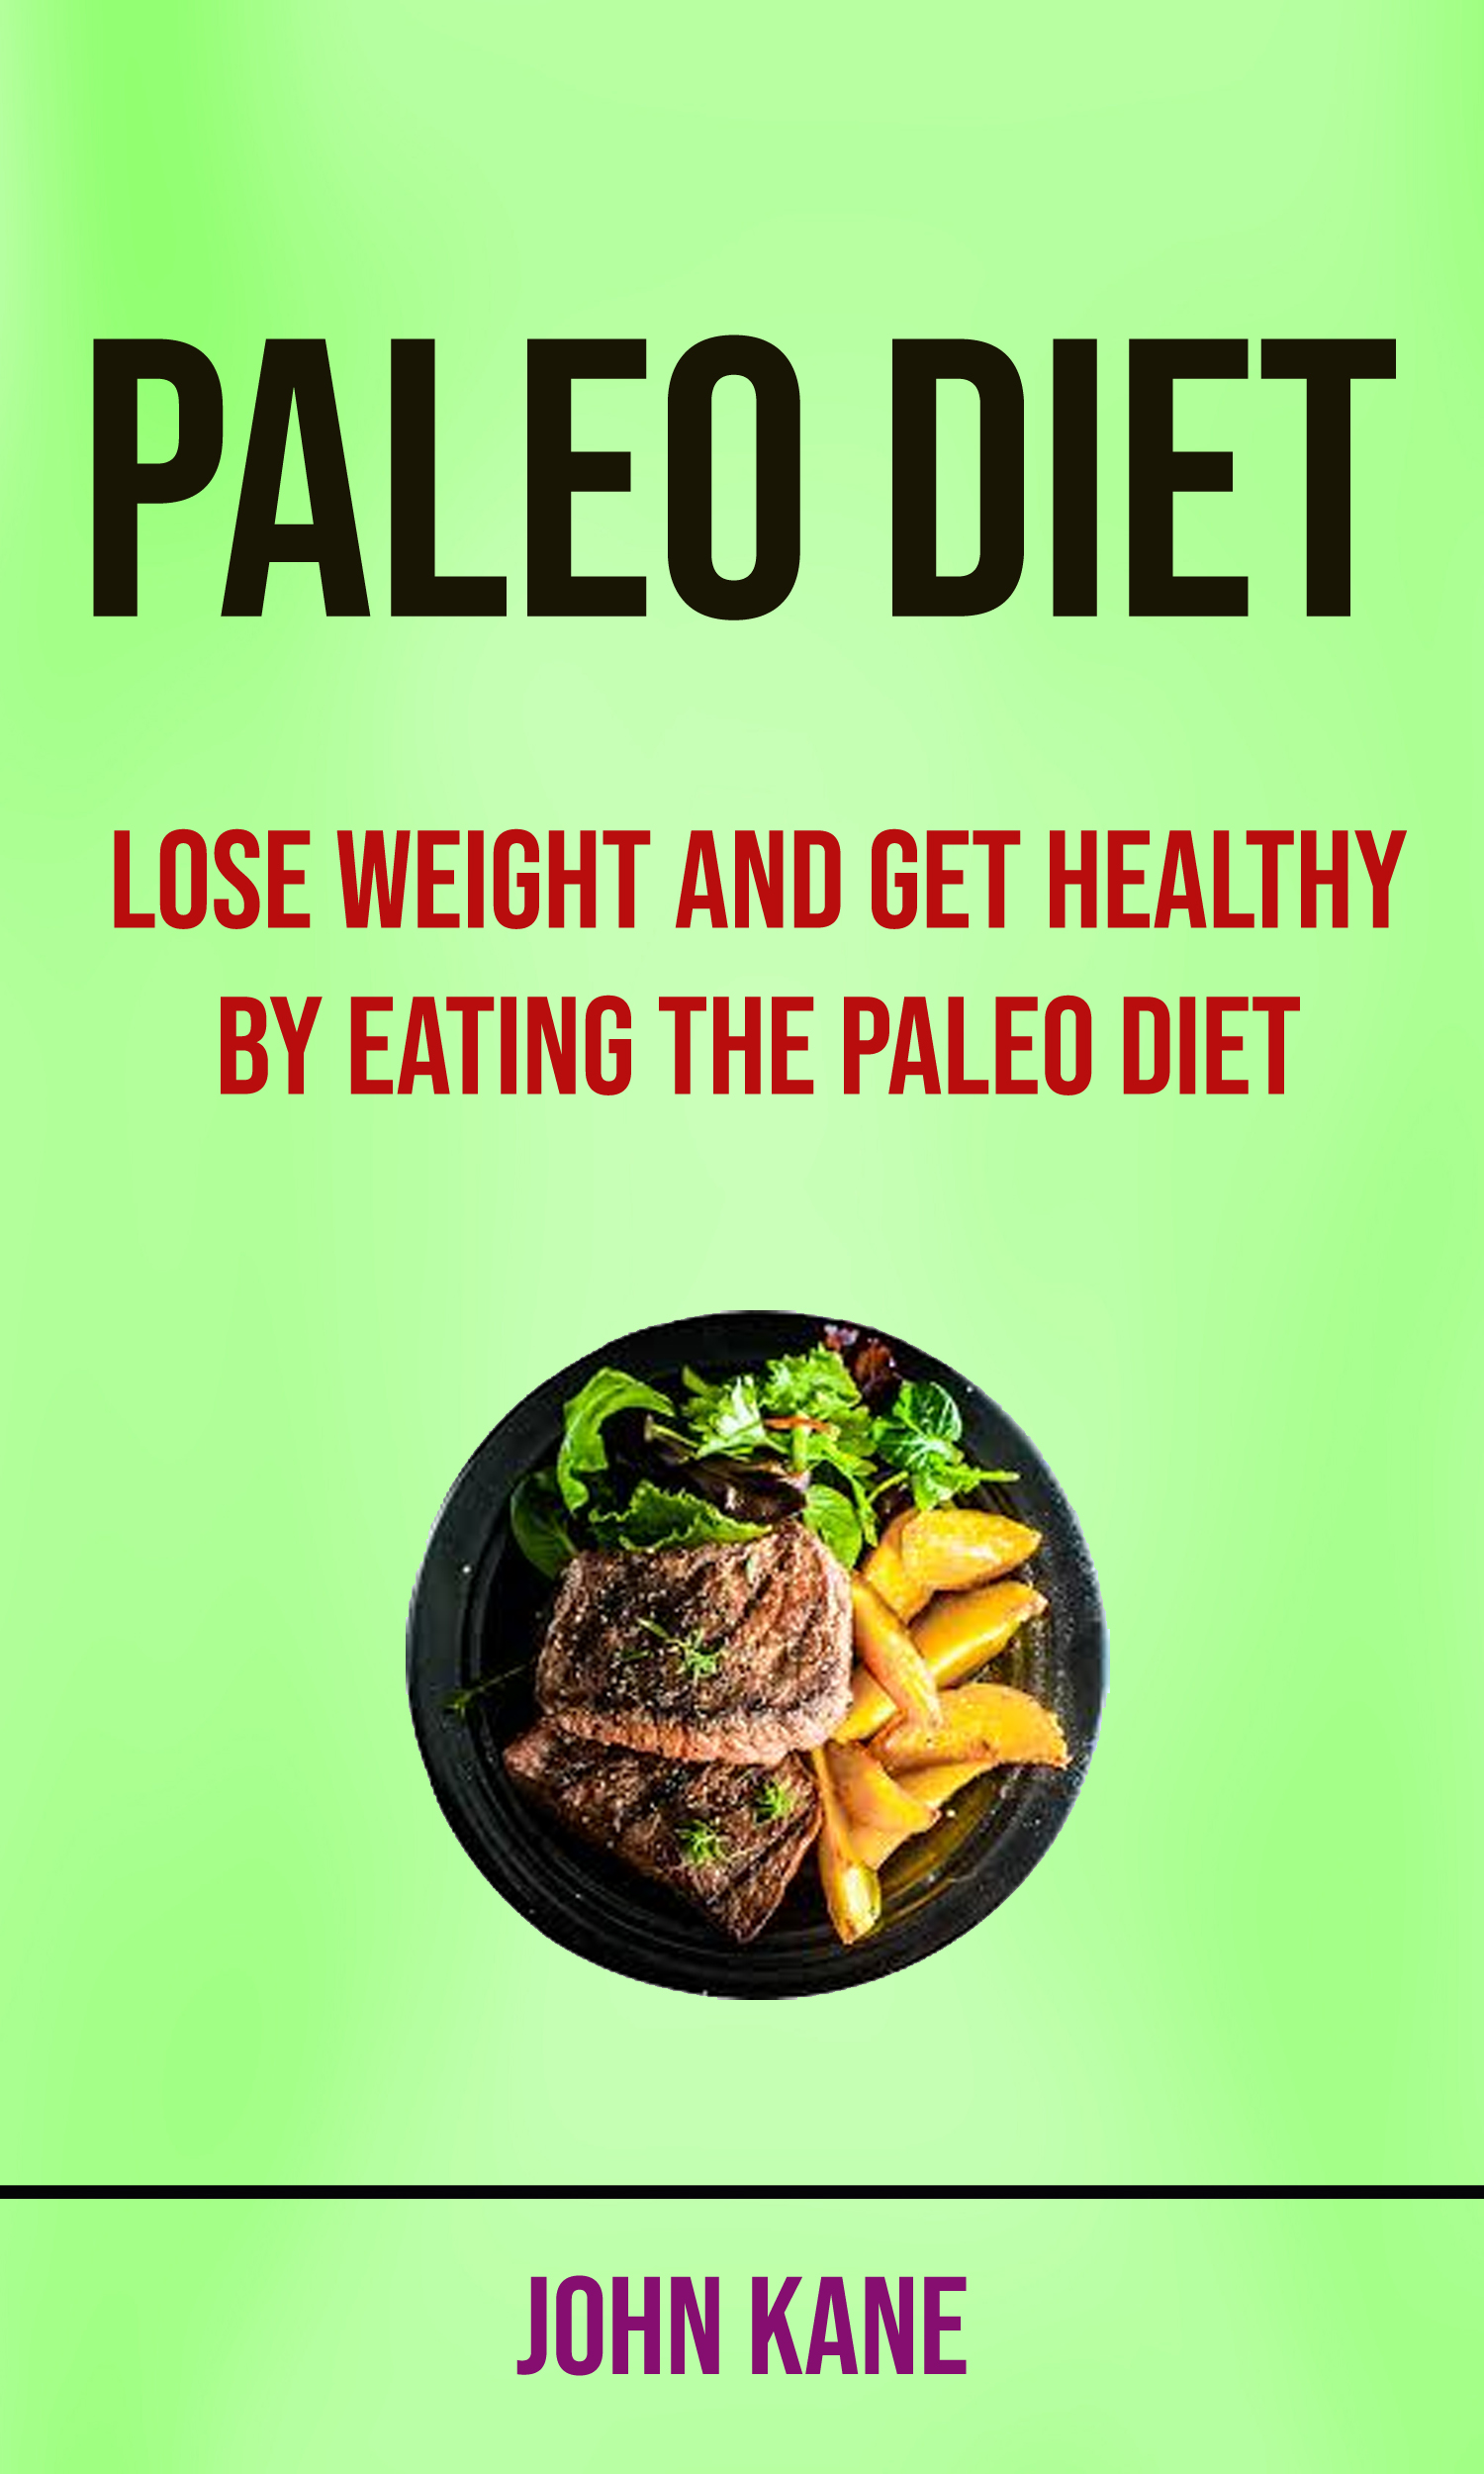 Paleo diet: lose weight and get healthy by eating the paleo diet